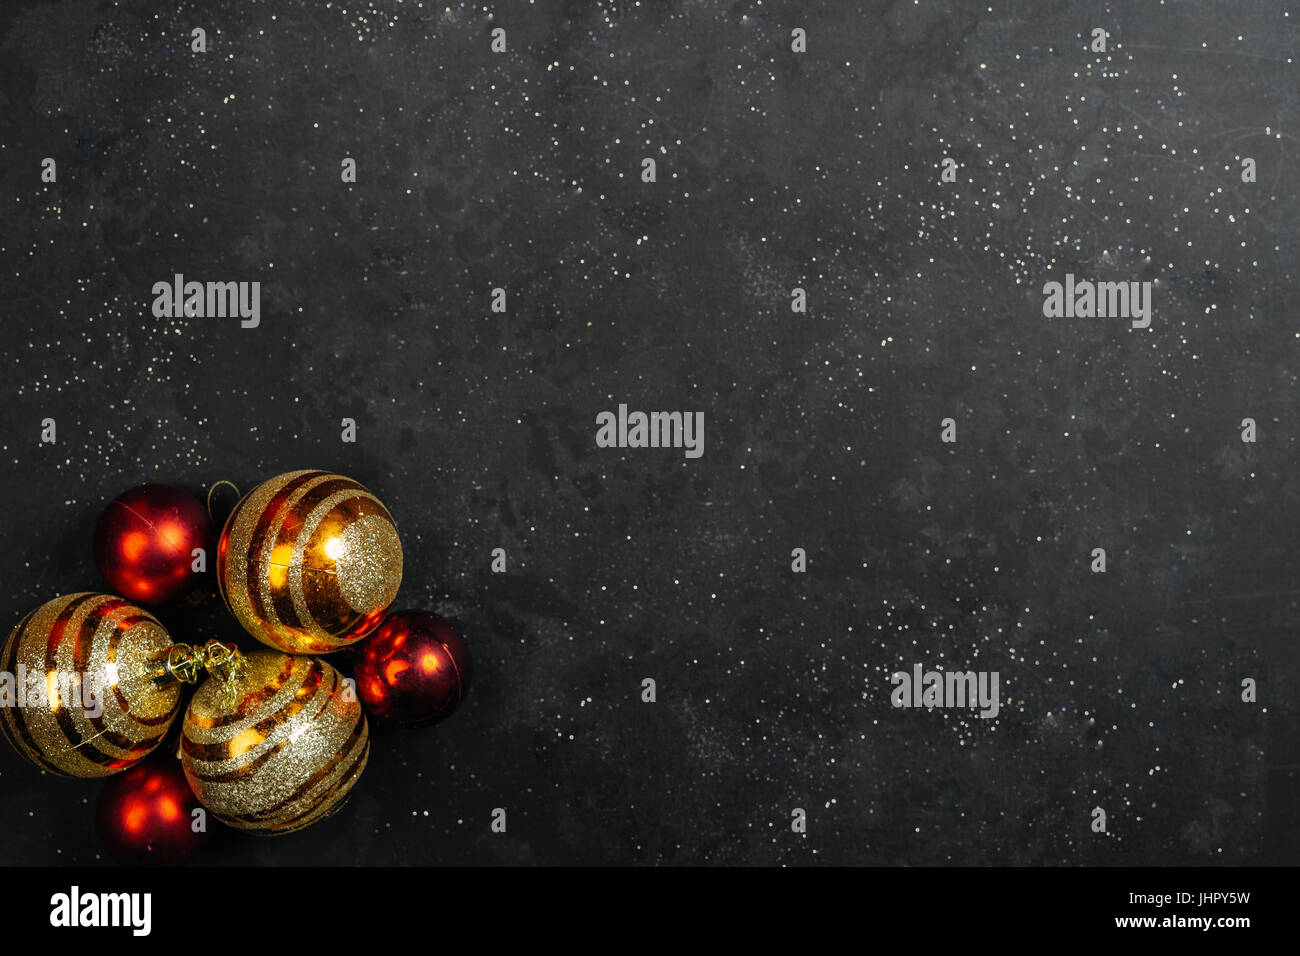 Christmas baubles on black background with glitters Stock Photo